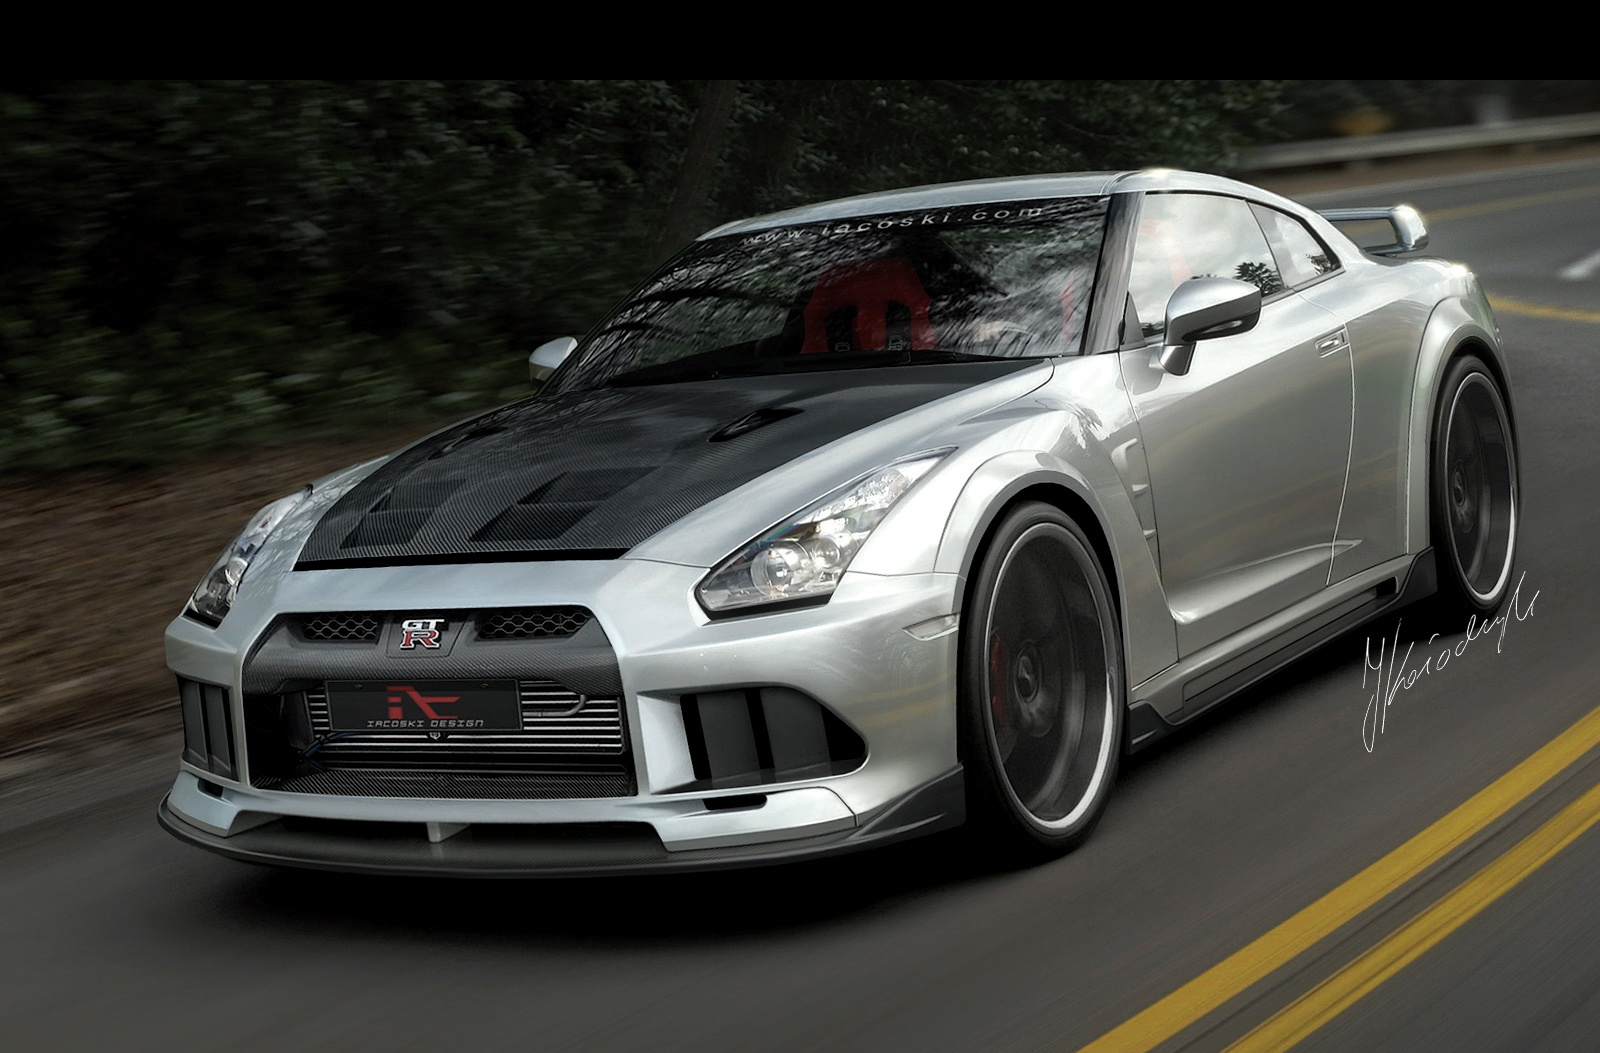 nissan car gtr hd wallpaper my site. Black Bedroom Furniture Sets. Home Design Ideas